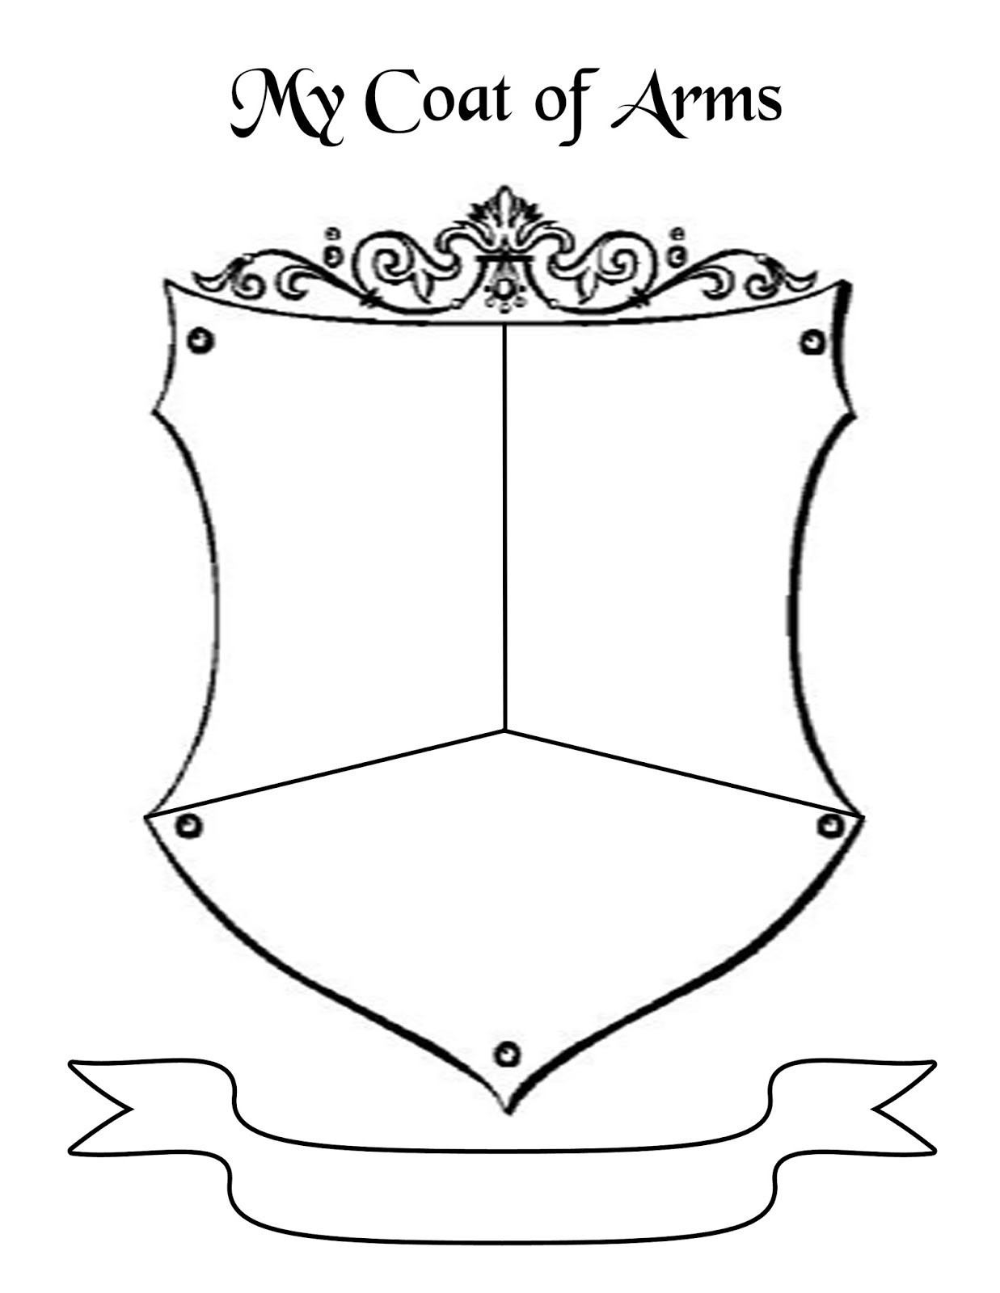 Blank Coat Of Arms Template Png Free Download Fourjay Pertaining To Blank Shield Template Printable Family Crest Template Coat Of Arms Shield Template